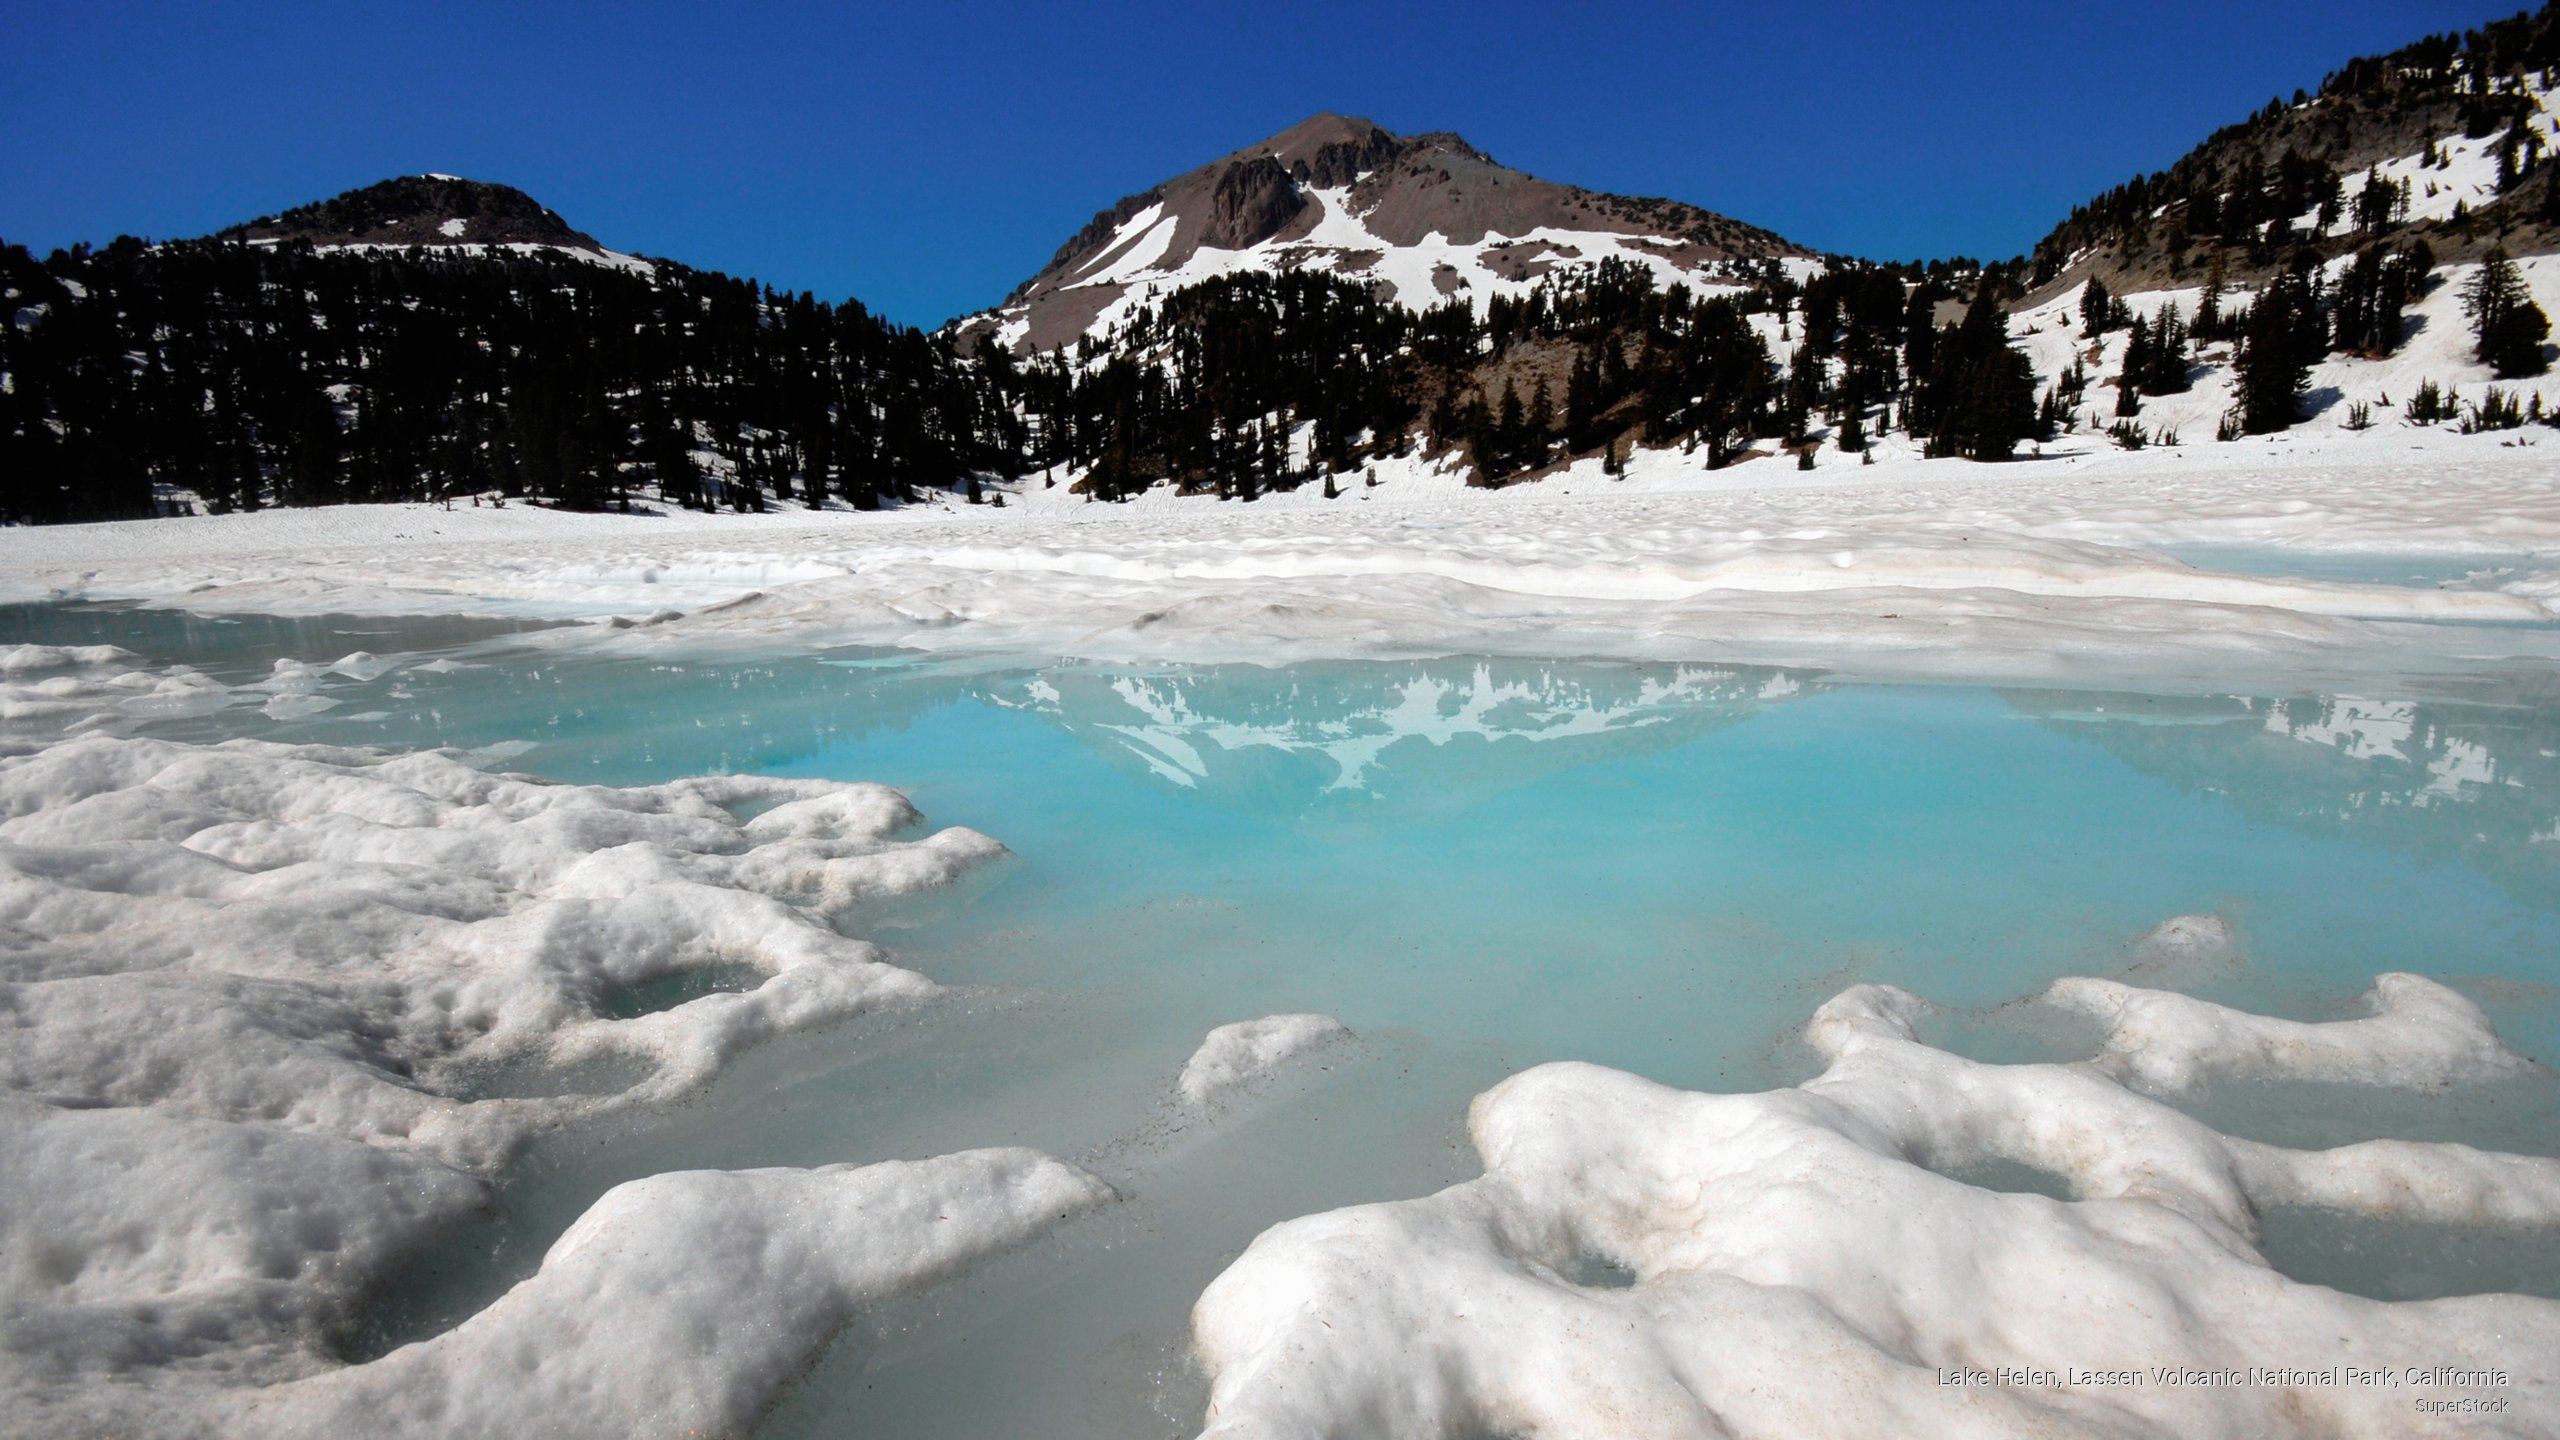 lassen national park wallpaper - photo #6